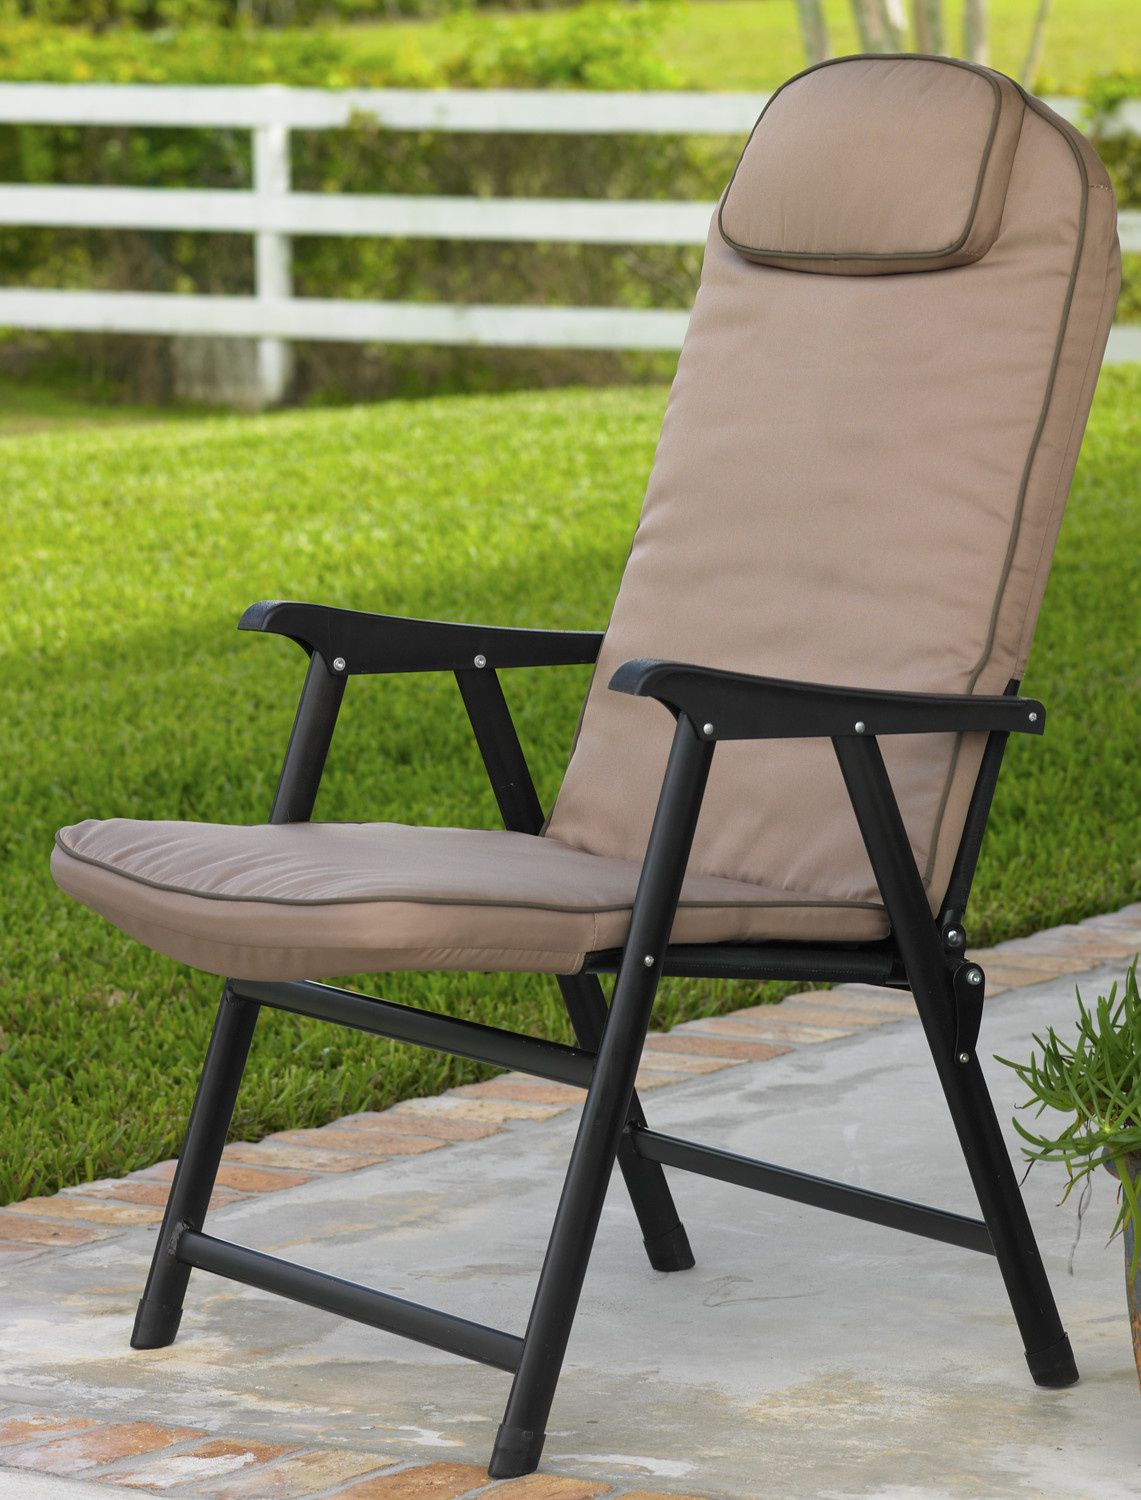 Extra Wide Folding Padded Outdoor Chair Stationary Weight Capacity Sy Lightweight Aluminum Frame Iron Seat Support Headrest Detachable Foam